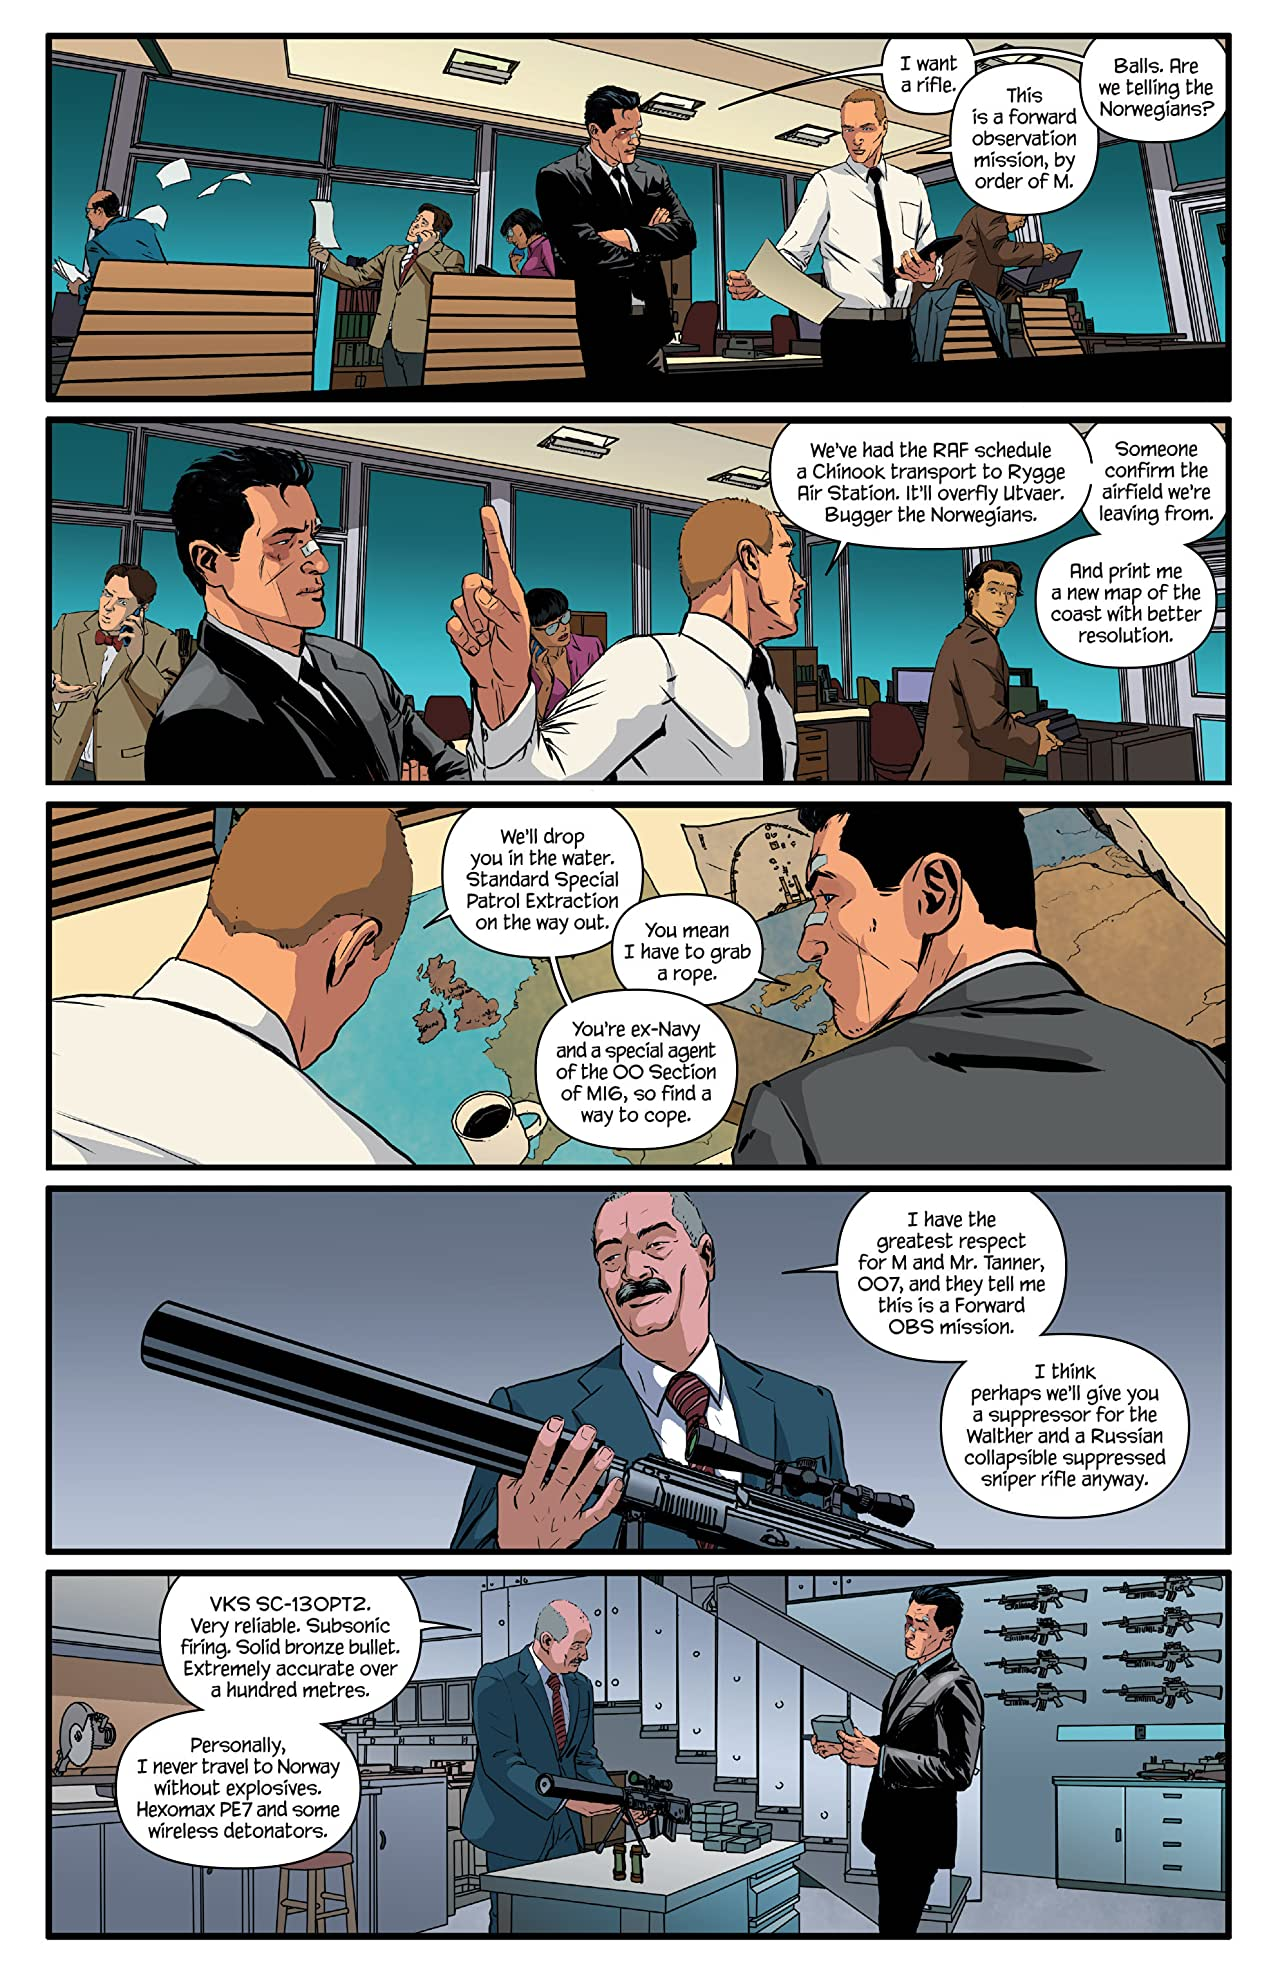 James Bond #6: Digital Exclusive Edition